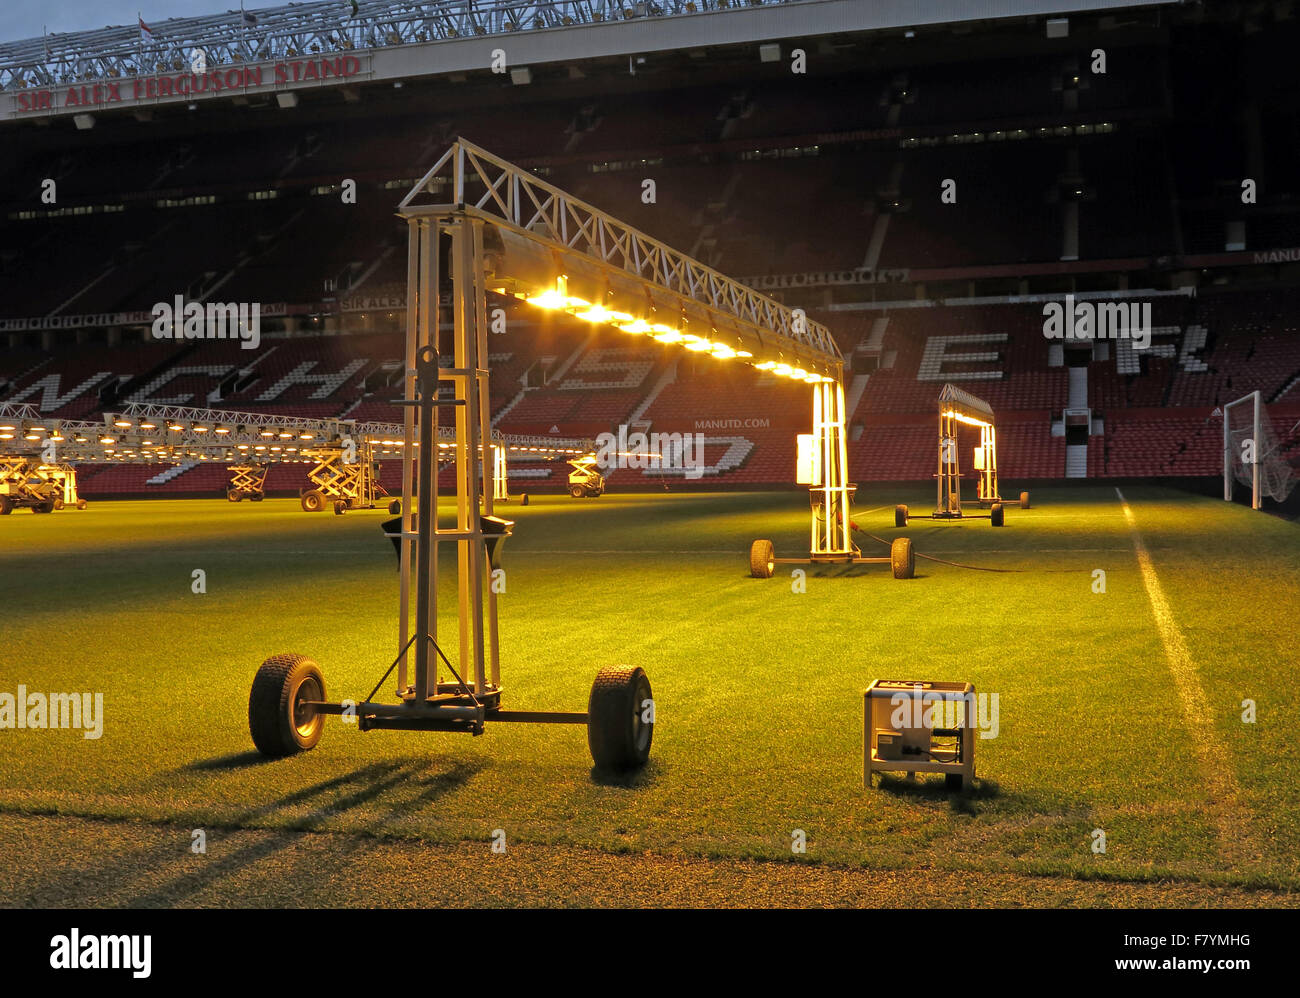 grass,pitch,pitches,winter,dark,months,month,of,wheels,mobile,lighting,rig,rigs,Dutch,company,Stadium,Grow,Holland,premiership,football,soccer,field,pitch,reseed,reseeding,seed,plant,planting,perfect,playing,surface,SGL,Mobilt,Mobile lighting rig,Football pitch,Football field,good grass,GoTonySmith,ManchesterUnited,MUFC,Mancester,MU,old,Trafford,theatre,of,dreams,Lancs,Lancashire,RedDevils,Red,Devils,Football,Club,FC,allseater,all-seater,association,away,balls,betting,britain,british,champions,changing,coaches,competition,culture,cups,division,documentary,dressing,england,english,fans,fixtures,game,goals,ground,heritage,history,home,homesoffootball,hooliganism,justice,kick,kick-off,league,managers,midweek,pitch,players,police,premier,promotion,referees,regulations,relegation,results,room,roots,rules,saturday,saturdays,scorers,season,seated,seater,seating,shinpads,shirt,shirts,sizes,sky,skysports,soccer,social,socks,sponsors,sport,stadia,stadium,standing,sundays,sunday,system,tables,team,terraces,Drivhus,Norway,Buy Pictures of,Buy Images Of,Old Trafford,Theatre of Dreams,Theater of dreams,Red Devils,Mobilt Drivhus